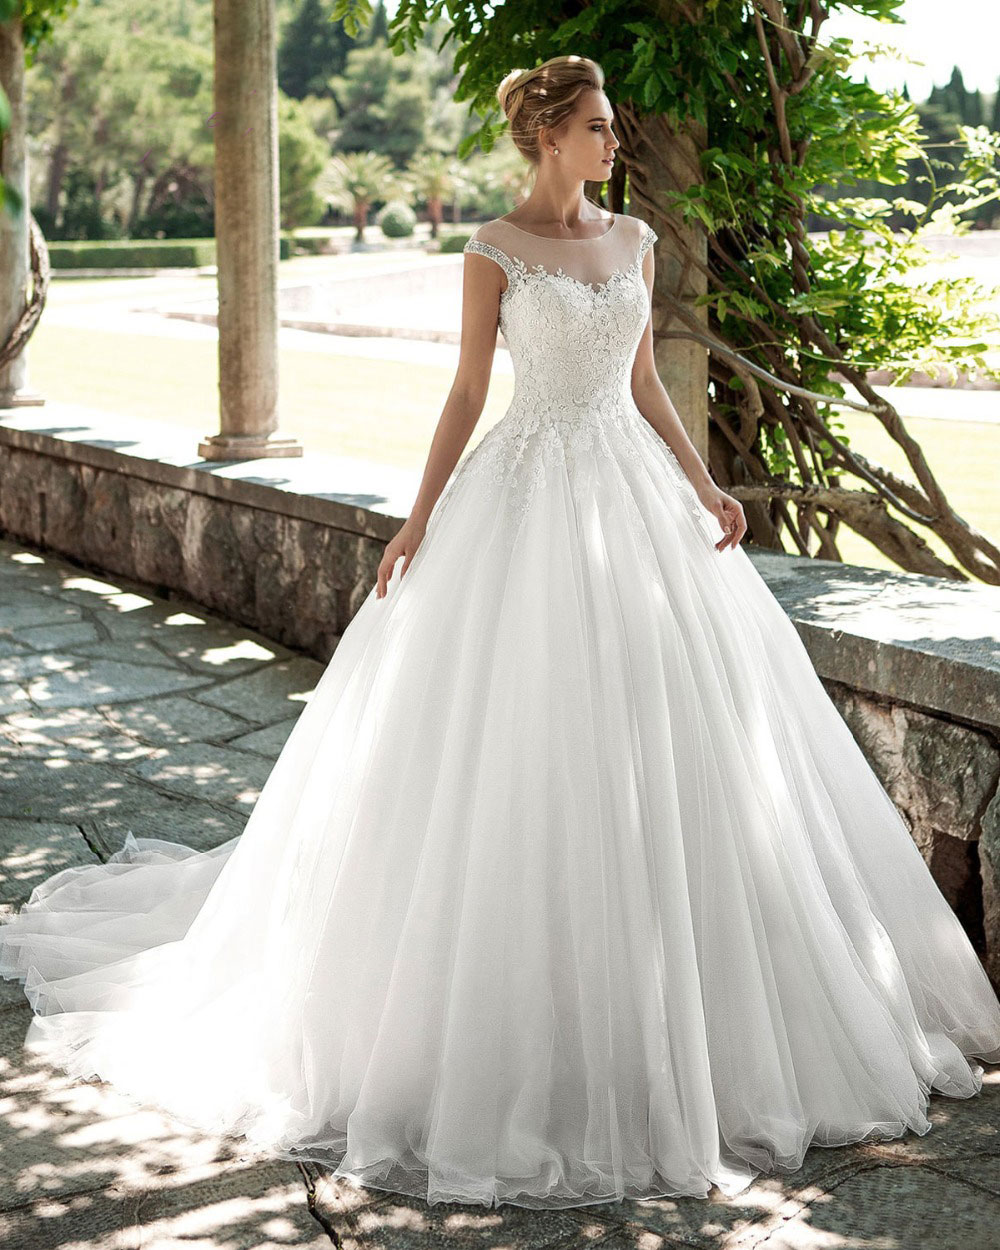 Wedding Gowns With Cap Sleeves: Elegant White A Line Wedding Dresses With Beaded Cap